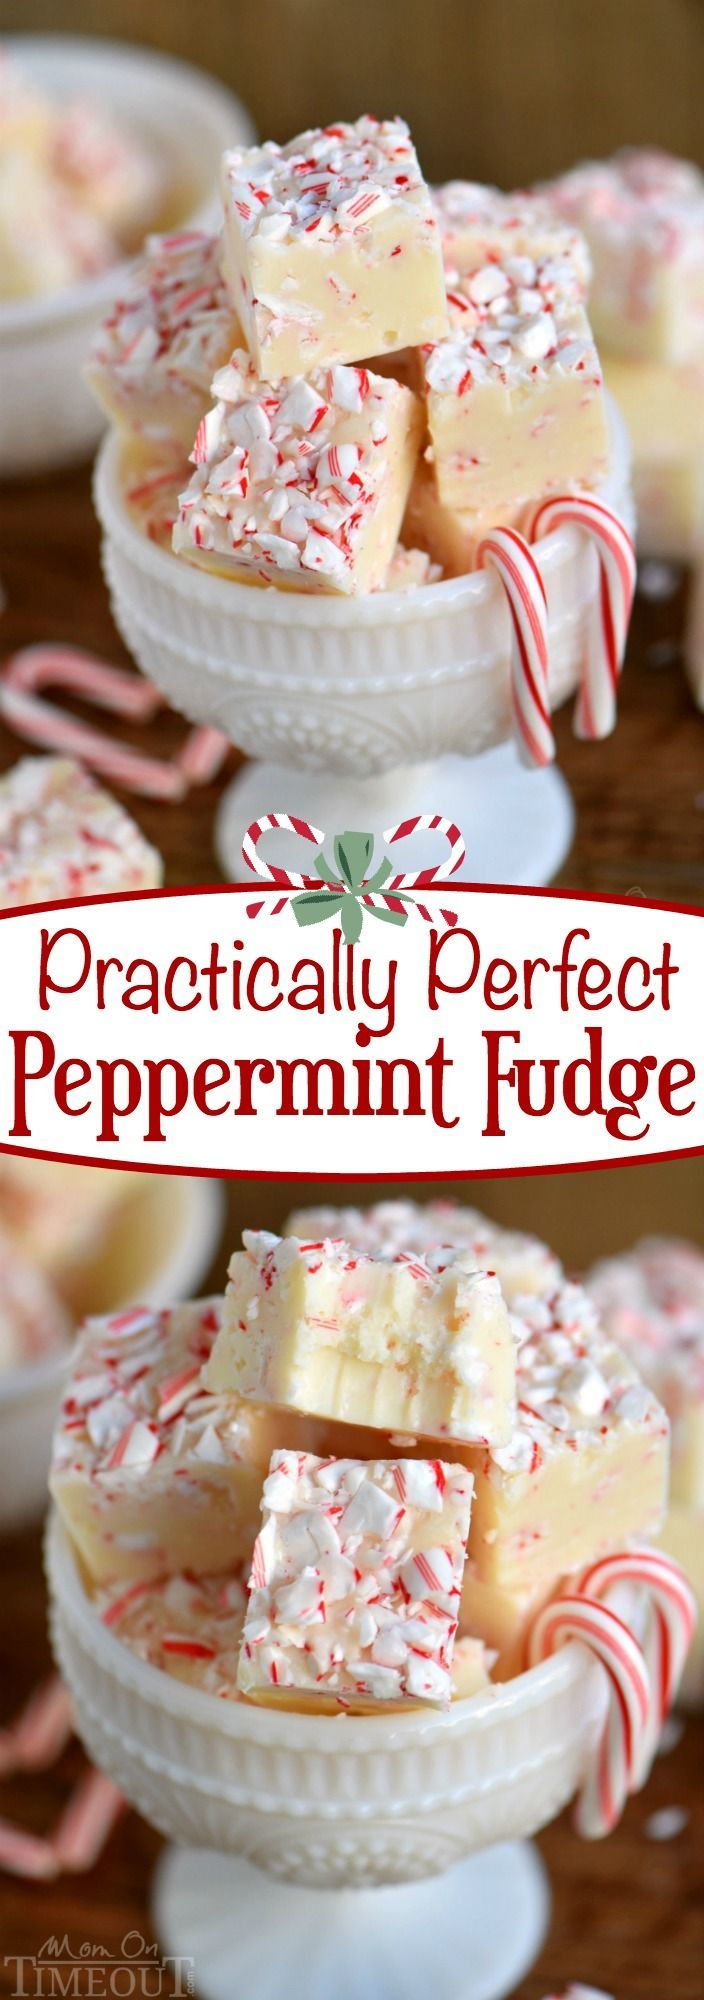 Tis the season for peppermint and sweets! You can have the best of both with this Practically Perfect Peppermint Fudge! Just a handful of ingredients and five minutes are all you need to make this pretty and festive fudge! // Mom On Timeout